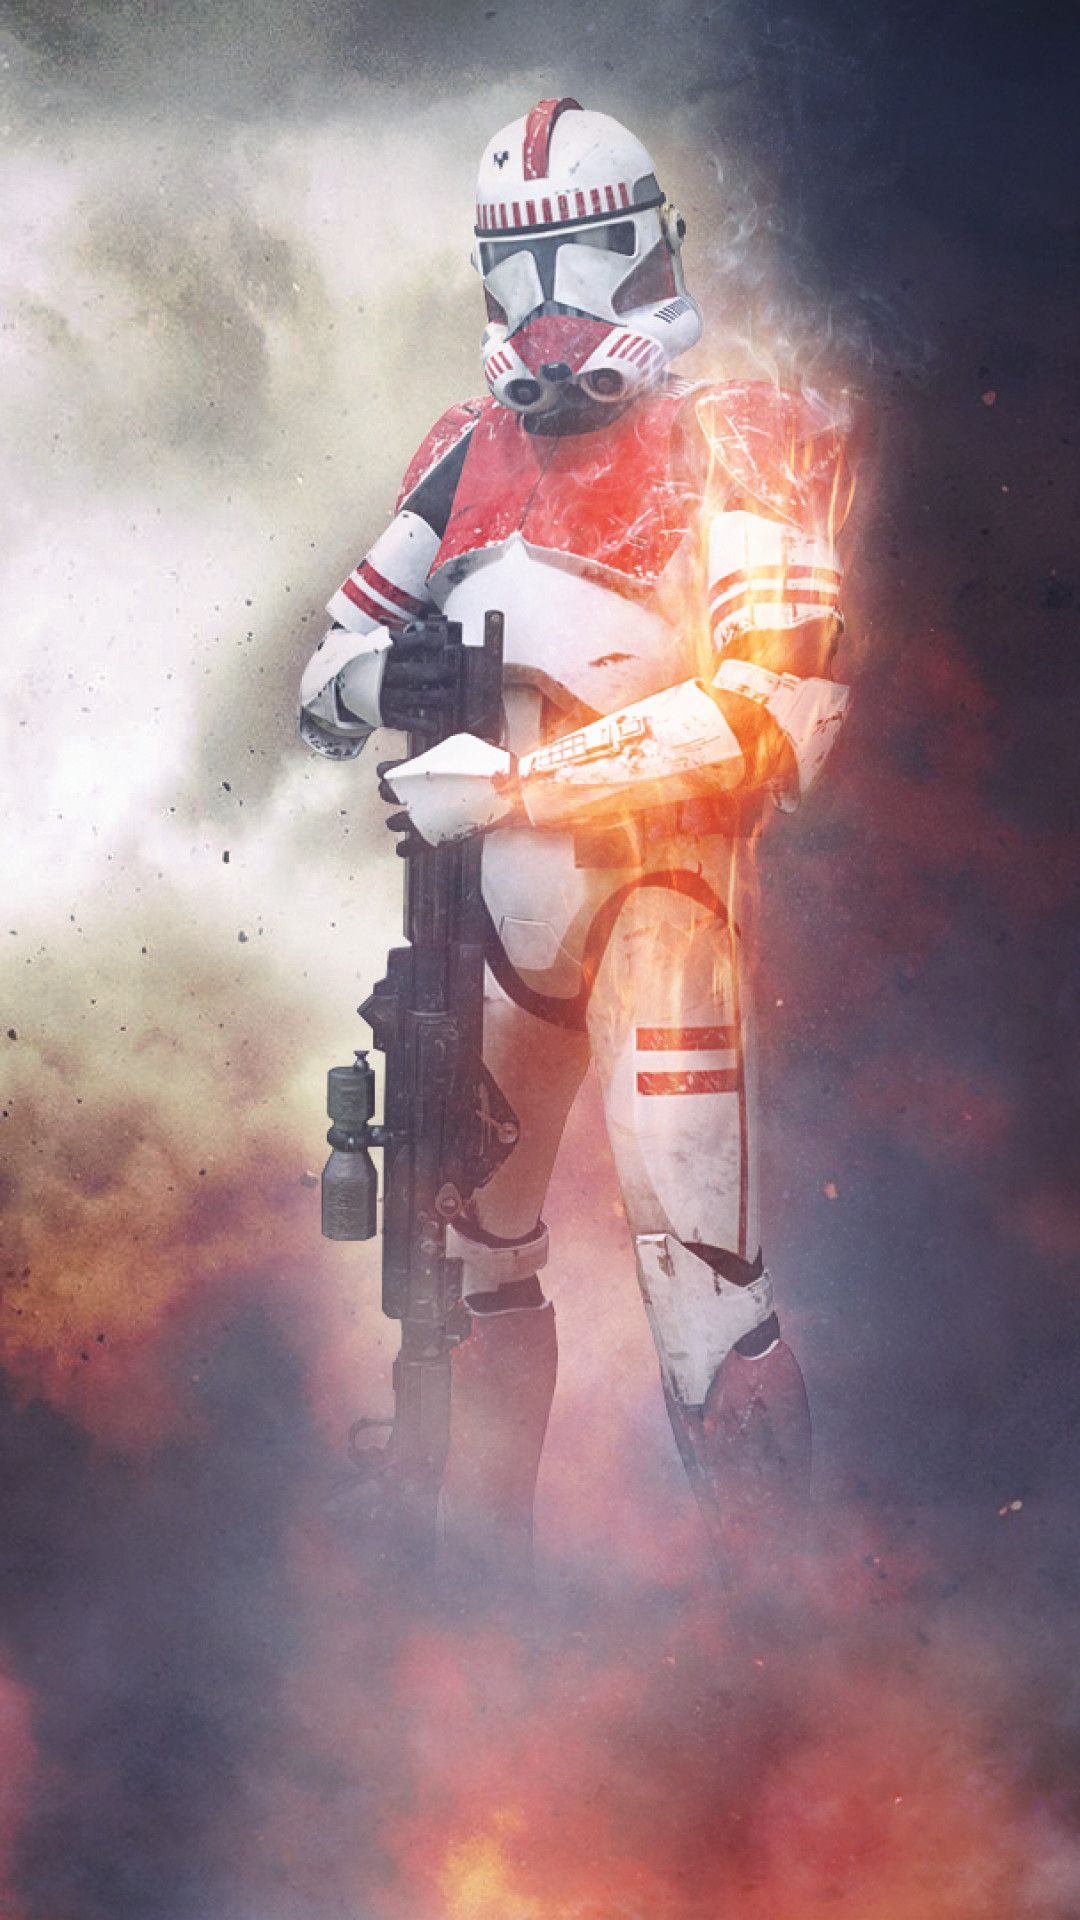 Epic Star Wars Battlefront Wallpaper Home Screen In 2020 Star Wars Wallpaper Star Wars Clone Wars Star Wars The Old